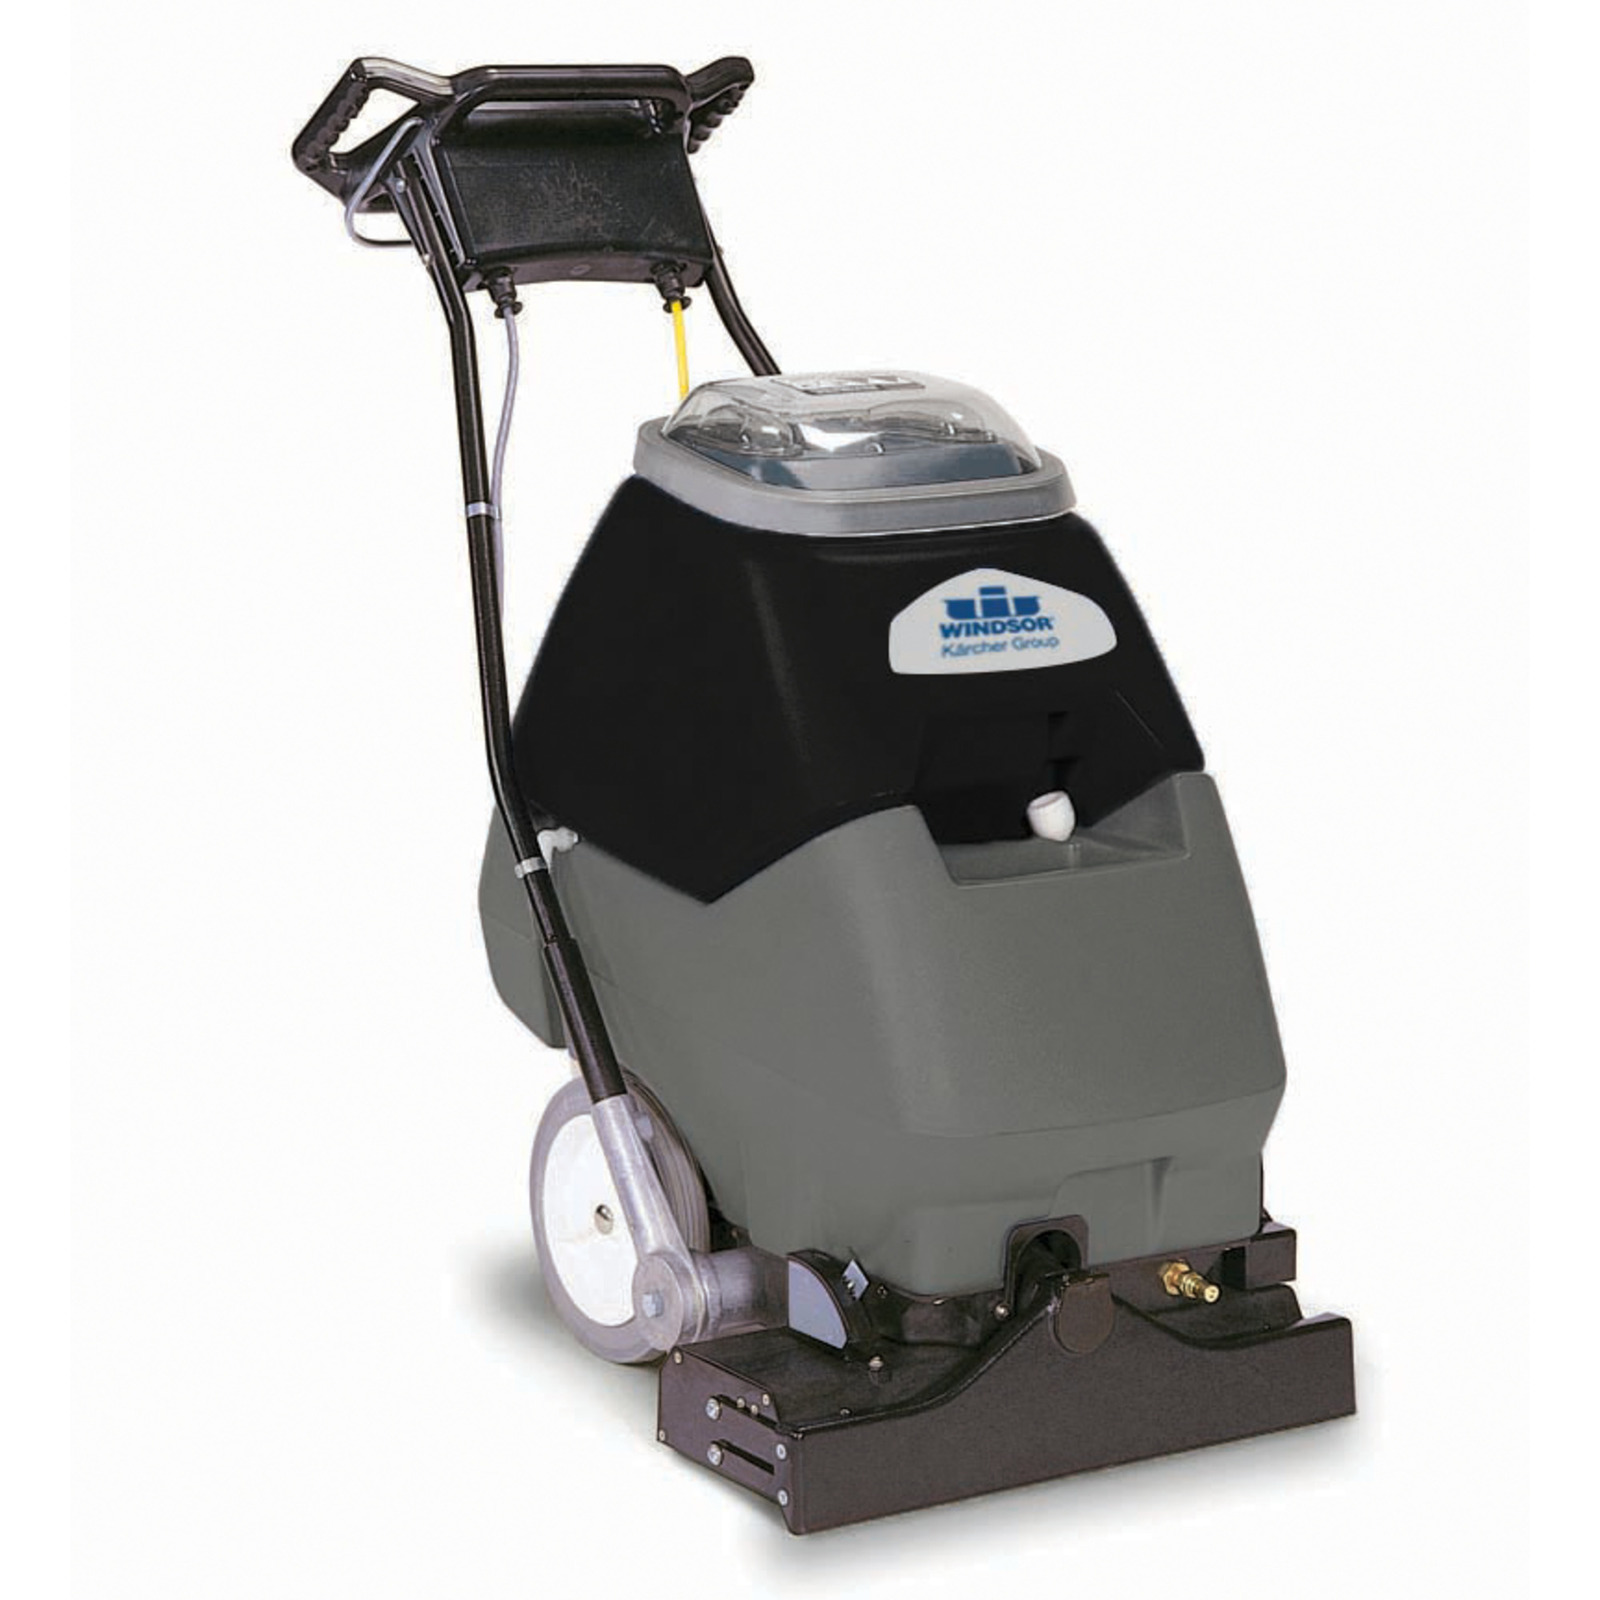 Windsor Clipper 12 gal Carpet Cleaning Machine Hard Surface Conversion Kit 8.602-569.0 Includes Brush, Squeegee, Water Pressure Reduction Switch 47292